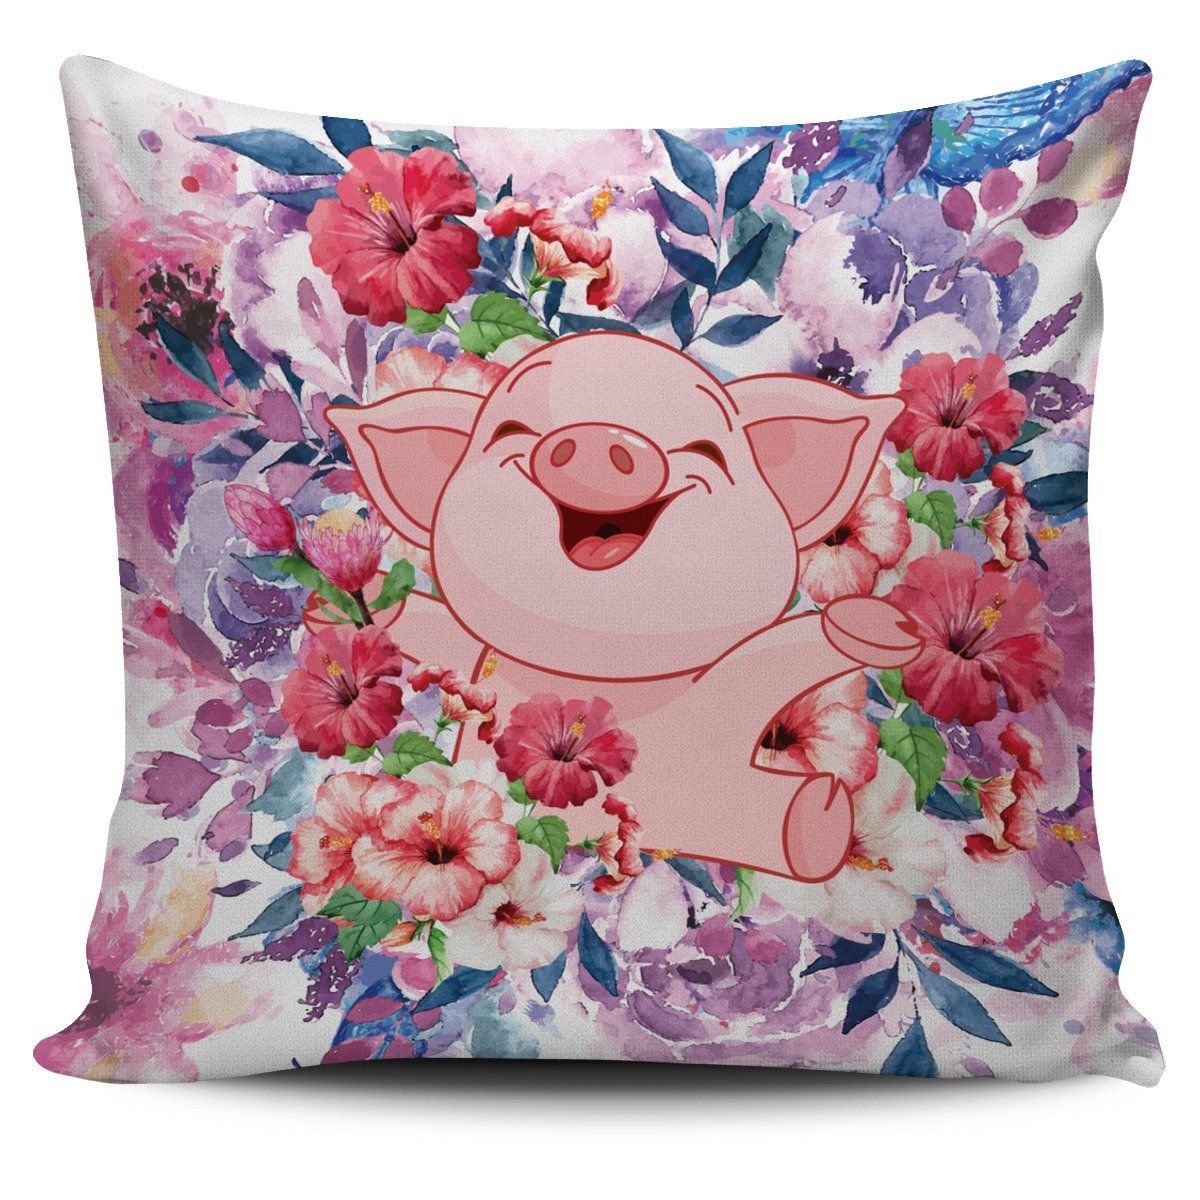 Cute pig pillow covers with flowers pig pillow pillows